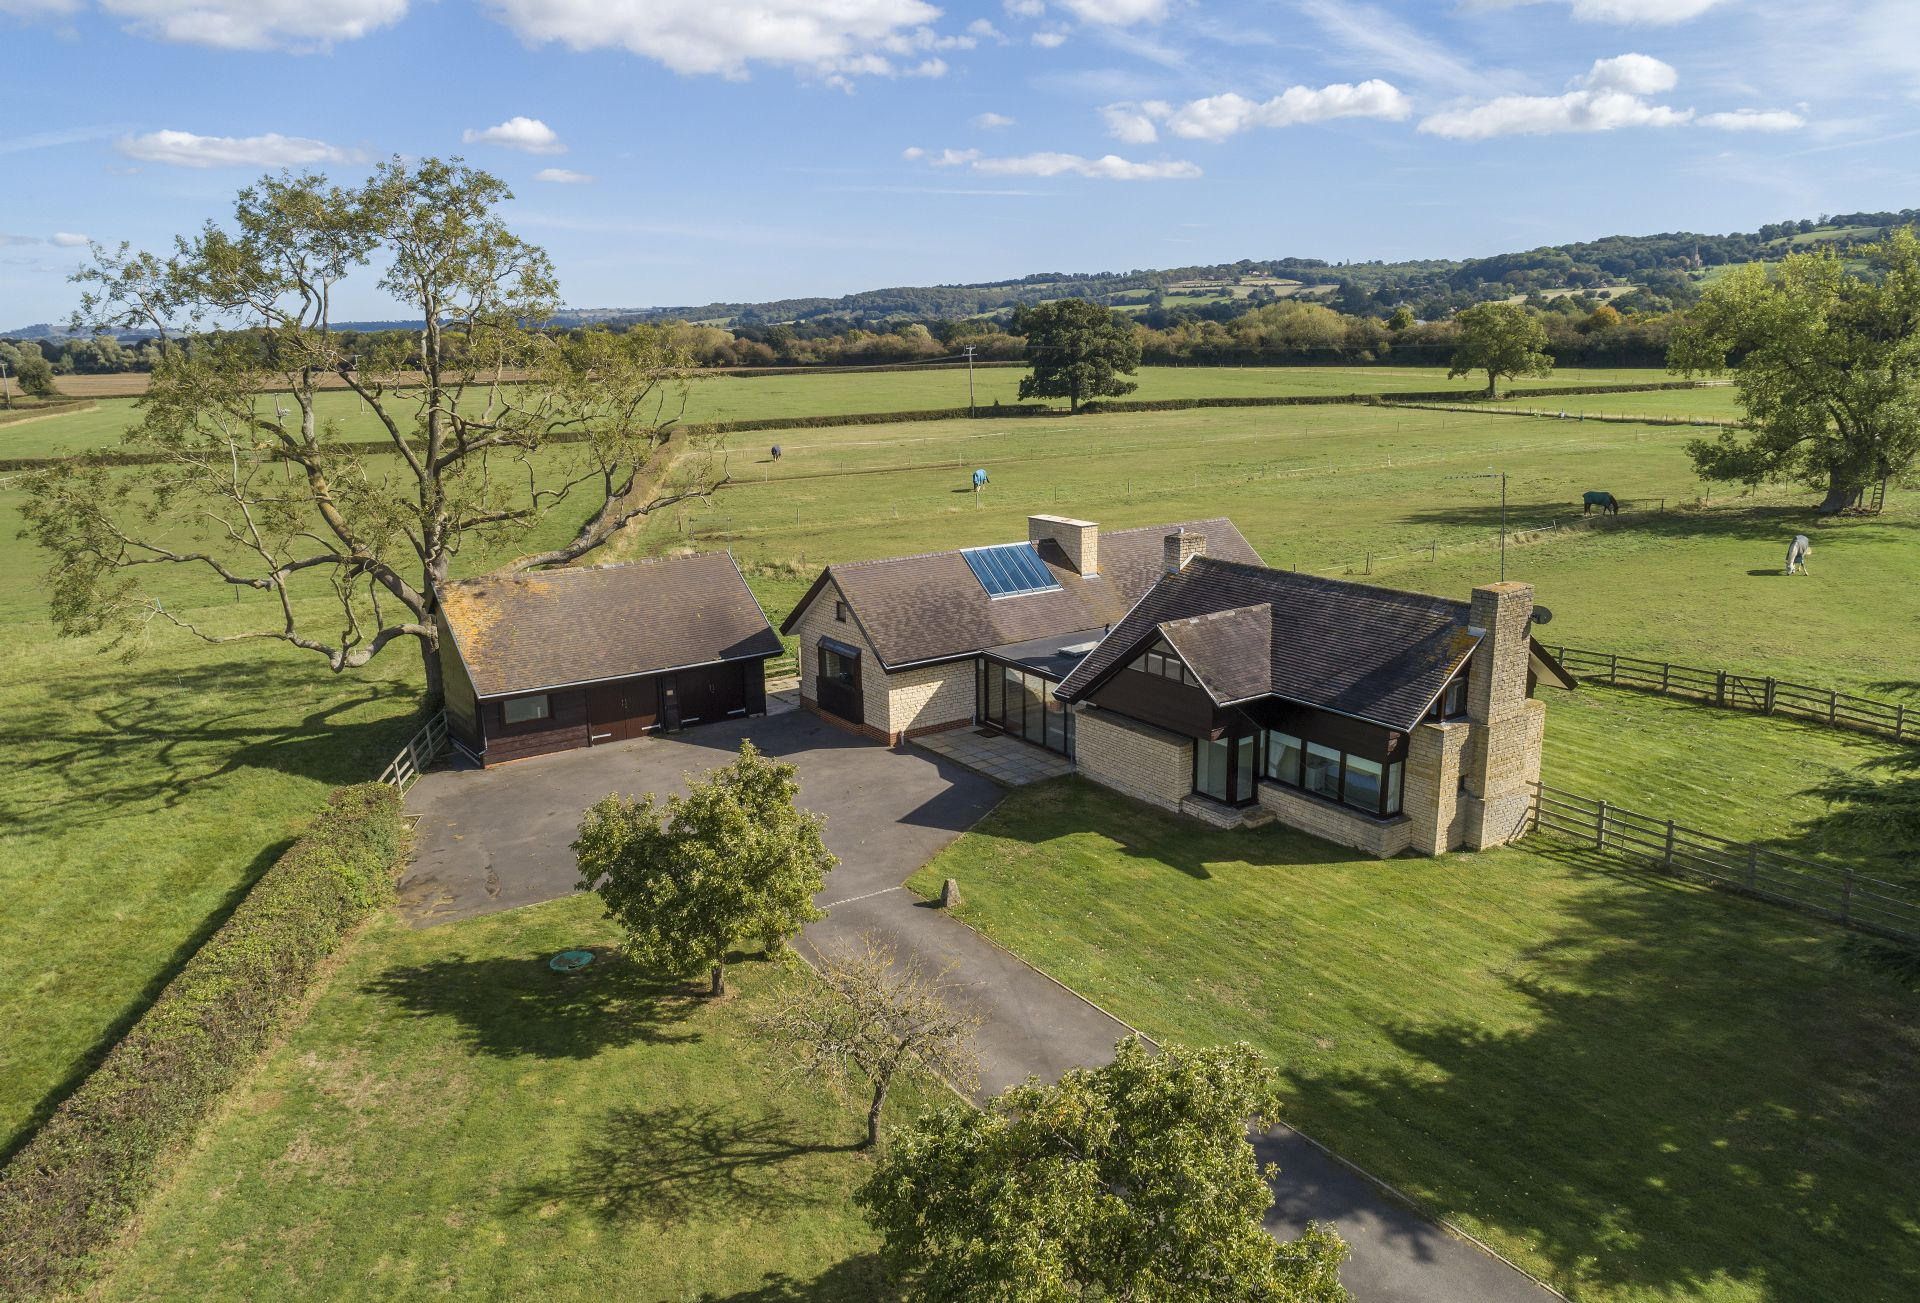 Willersey Farm House has plenty of private parking to the front of the property